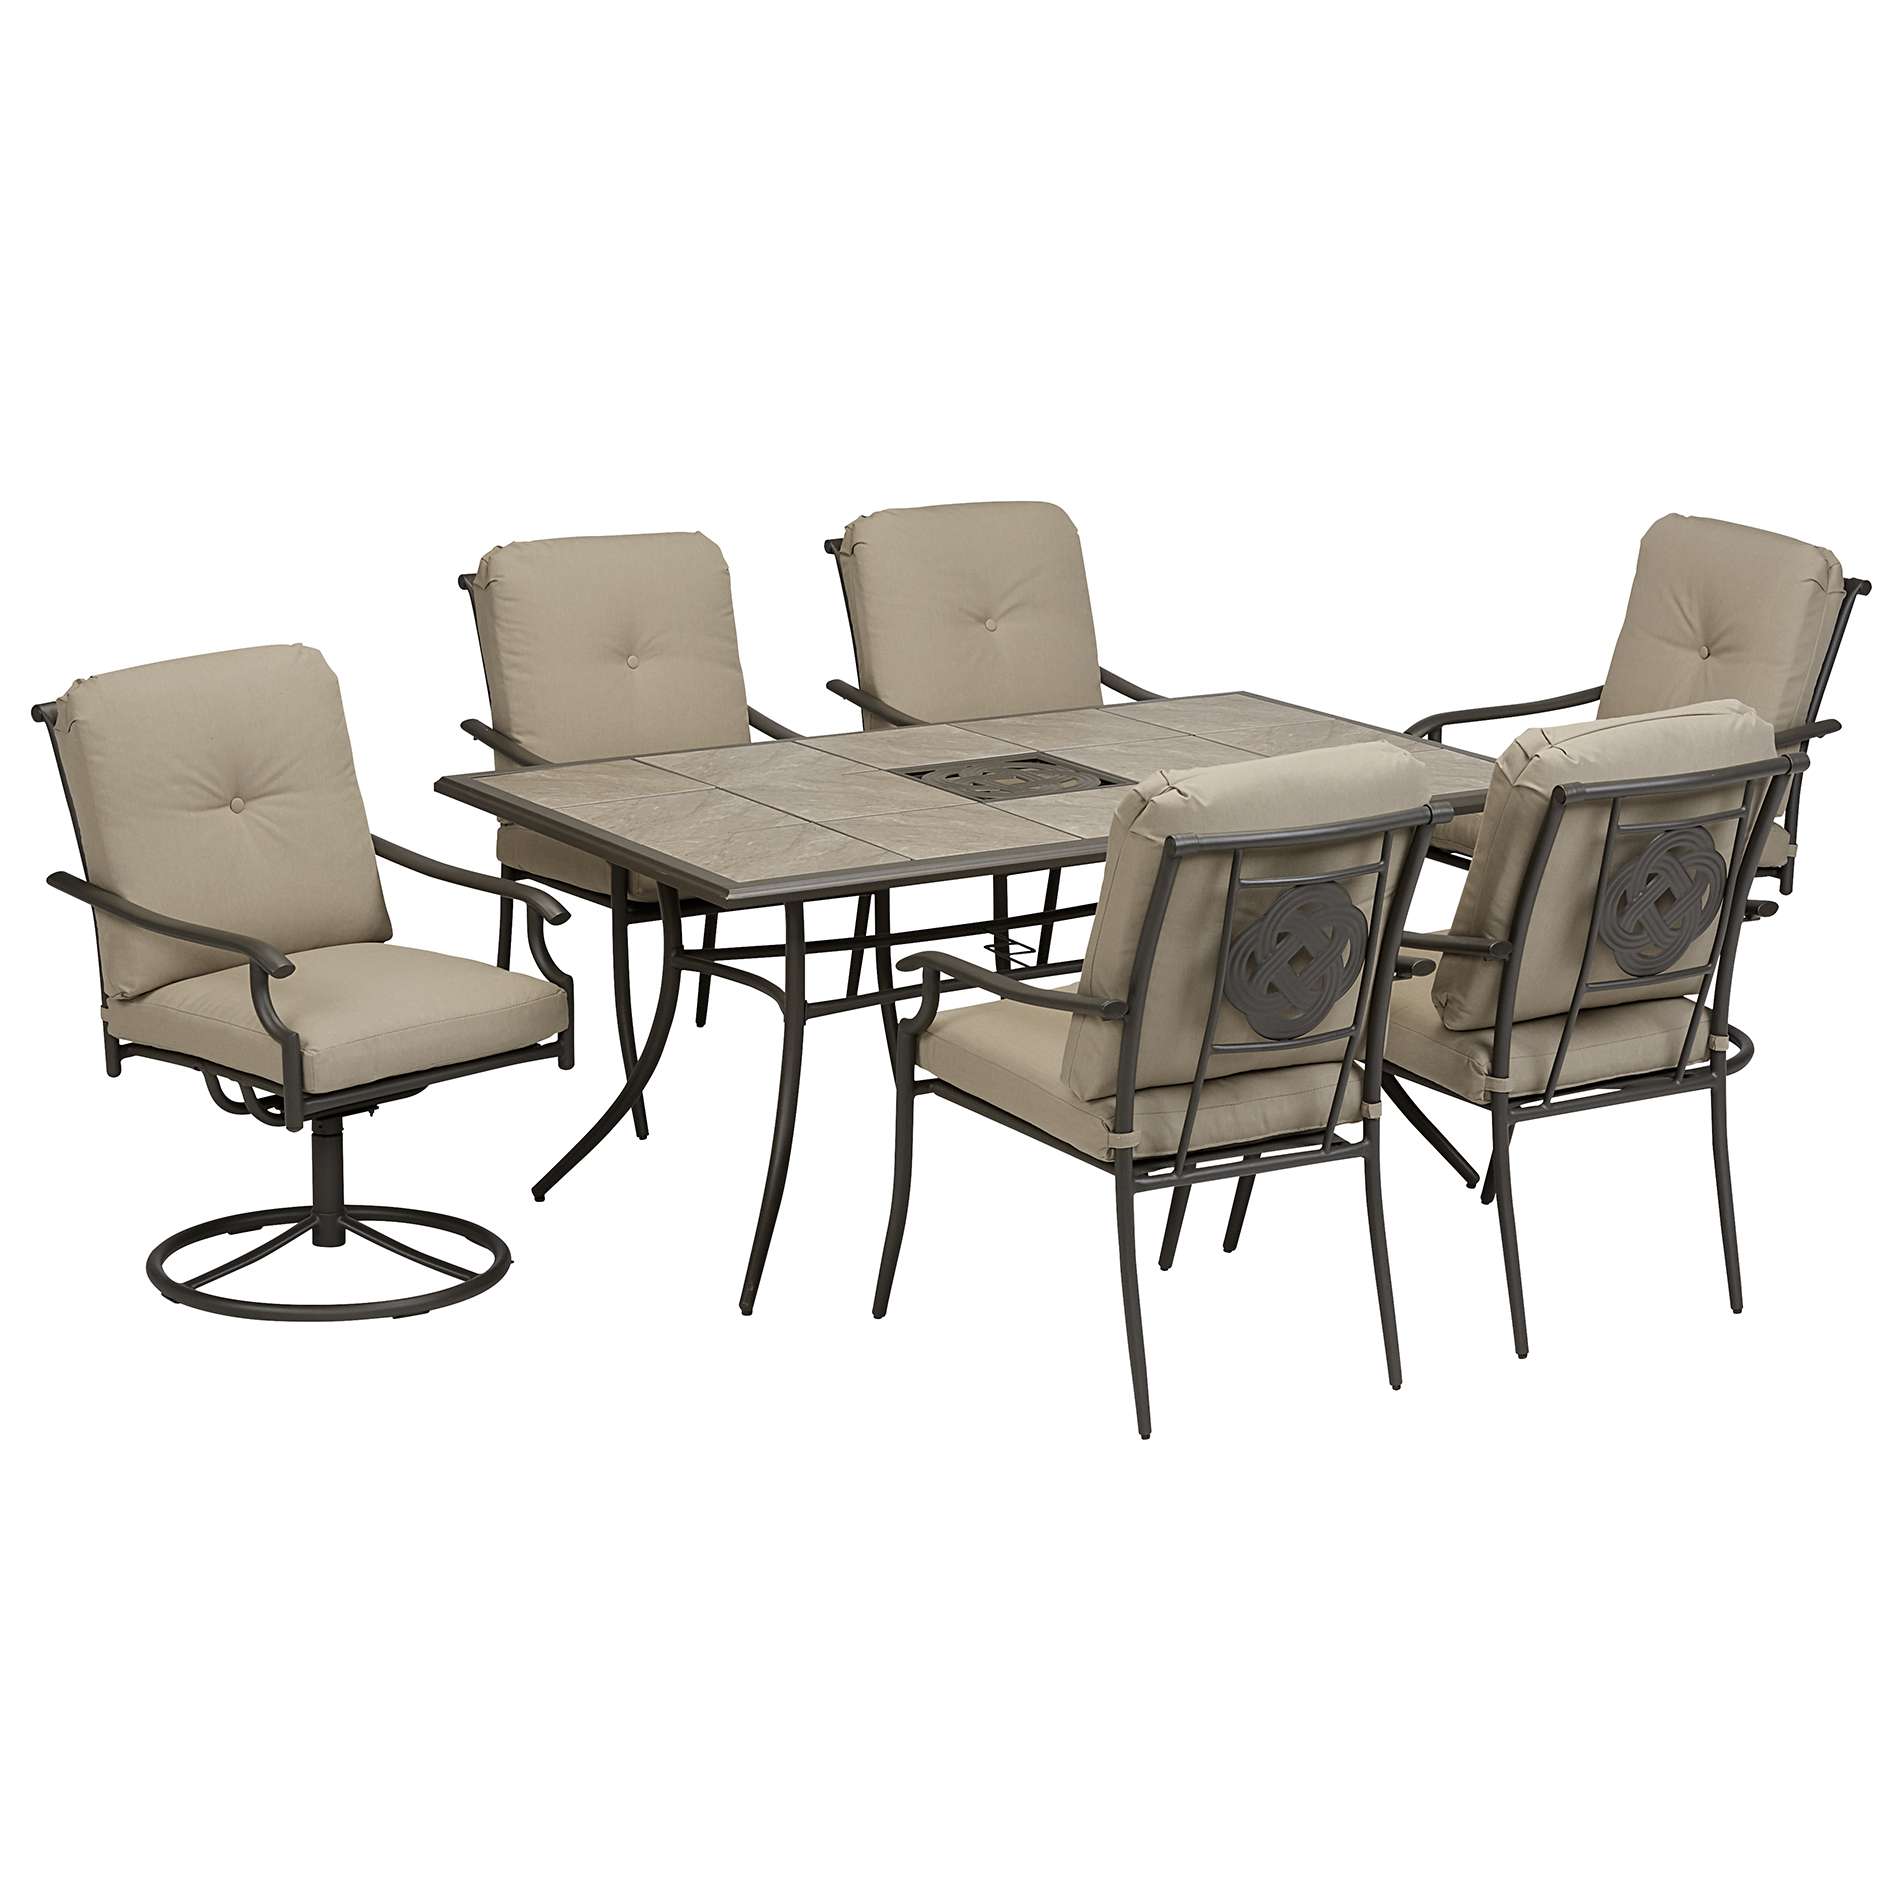 Garden Oasis Brookston 7 Piece Dining Set - Stone Sears